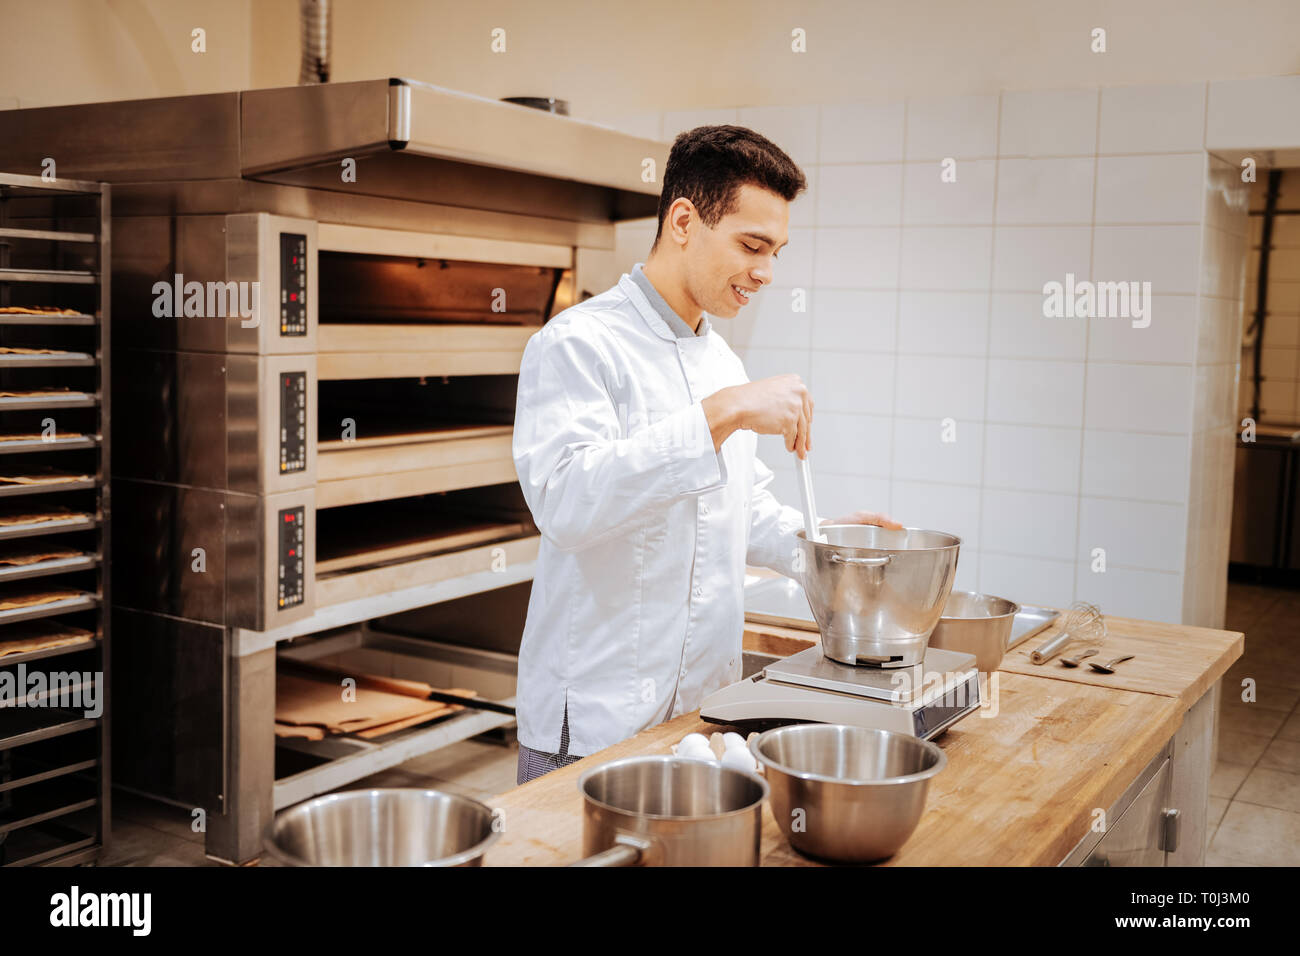 Baker standing near big professional oven and kitchen scale - Stock Image